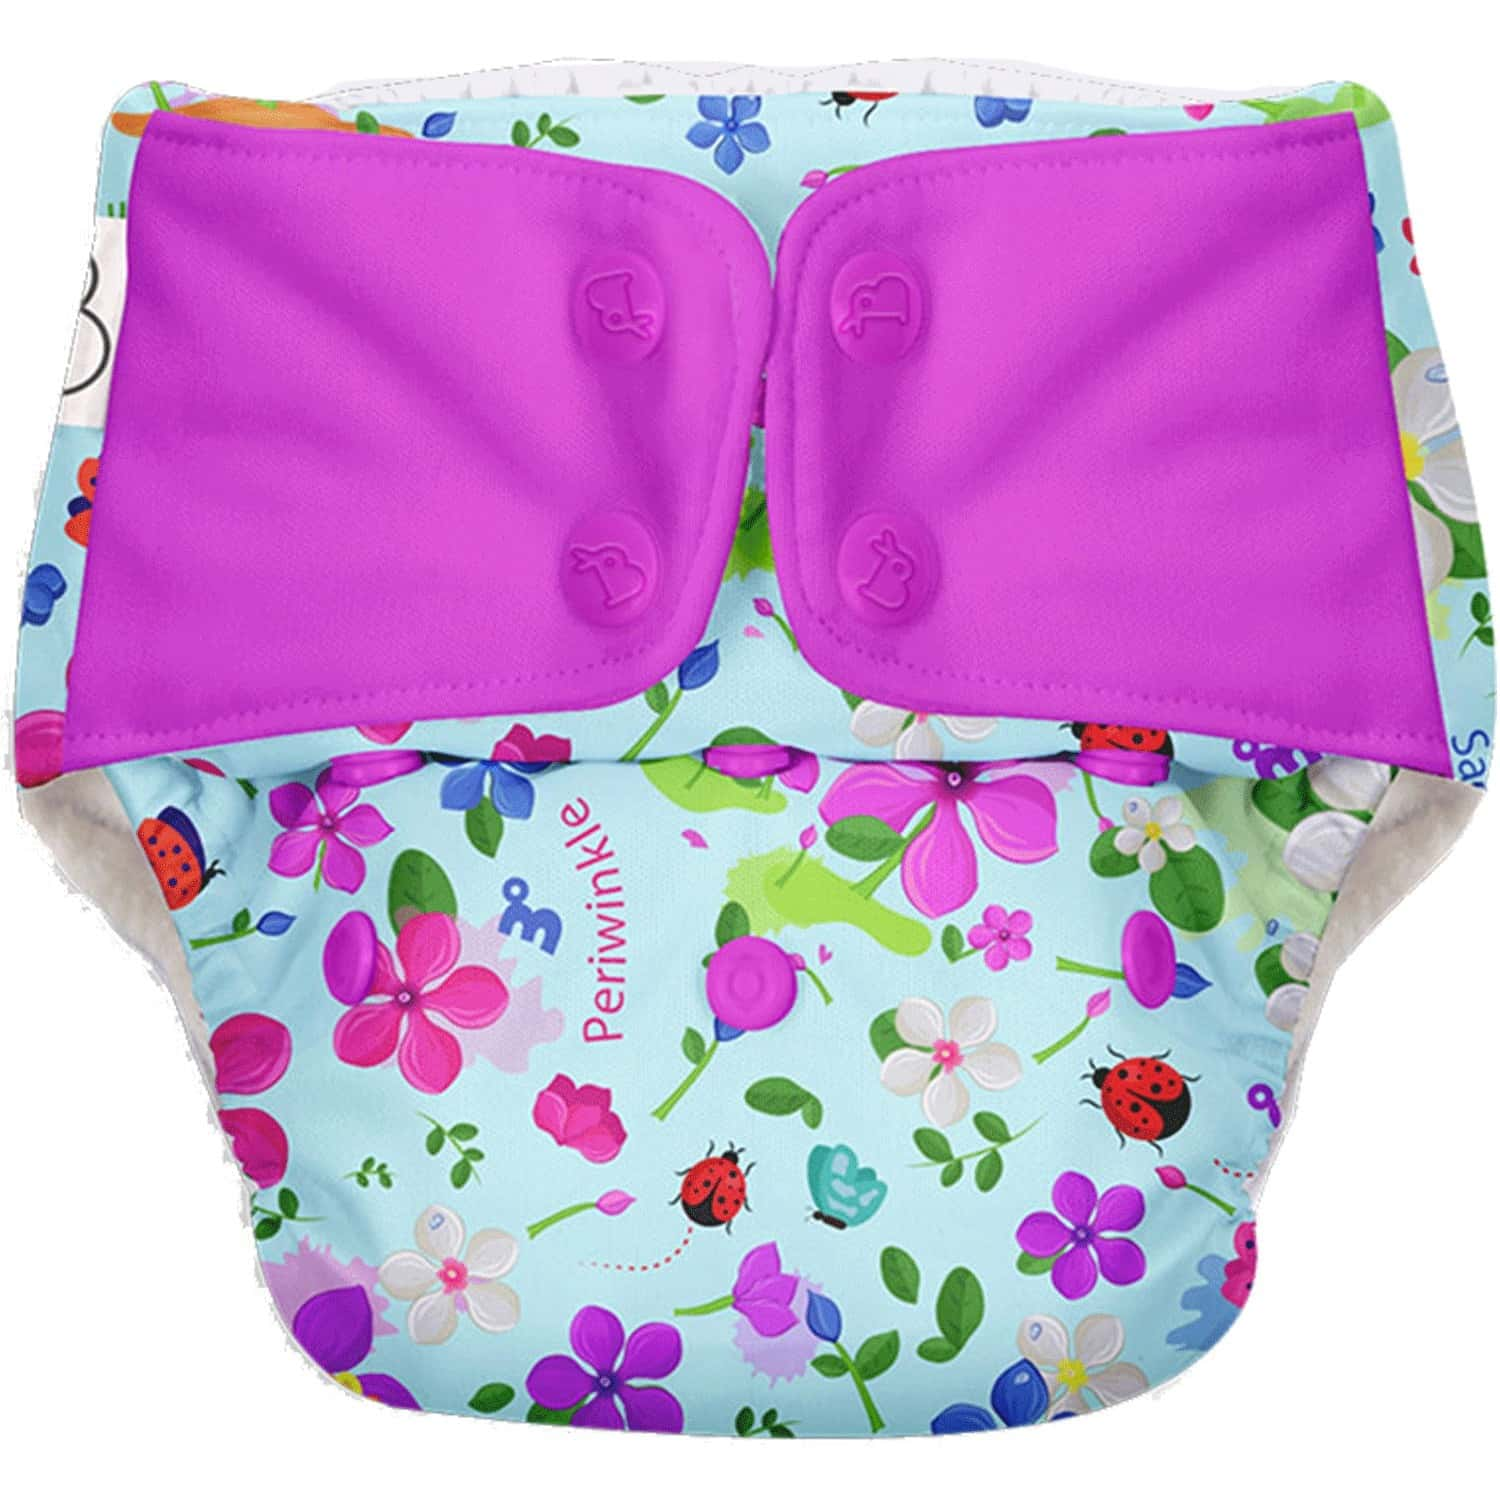 Superbottoms Freesize Uno - Reusable Cloth Diaper With Dry Feel Pads Set - Periwinkle